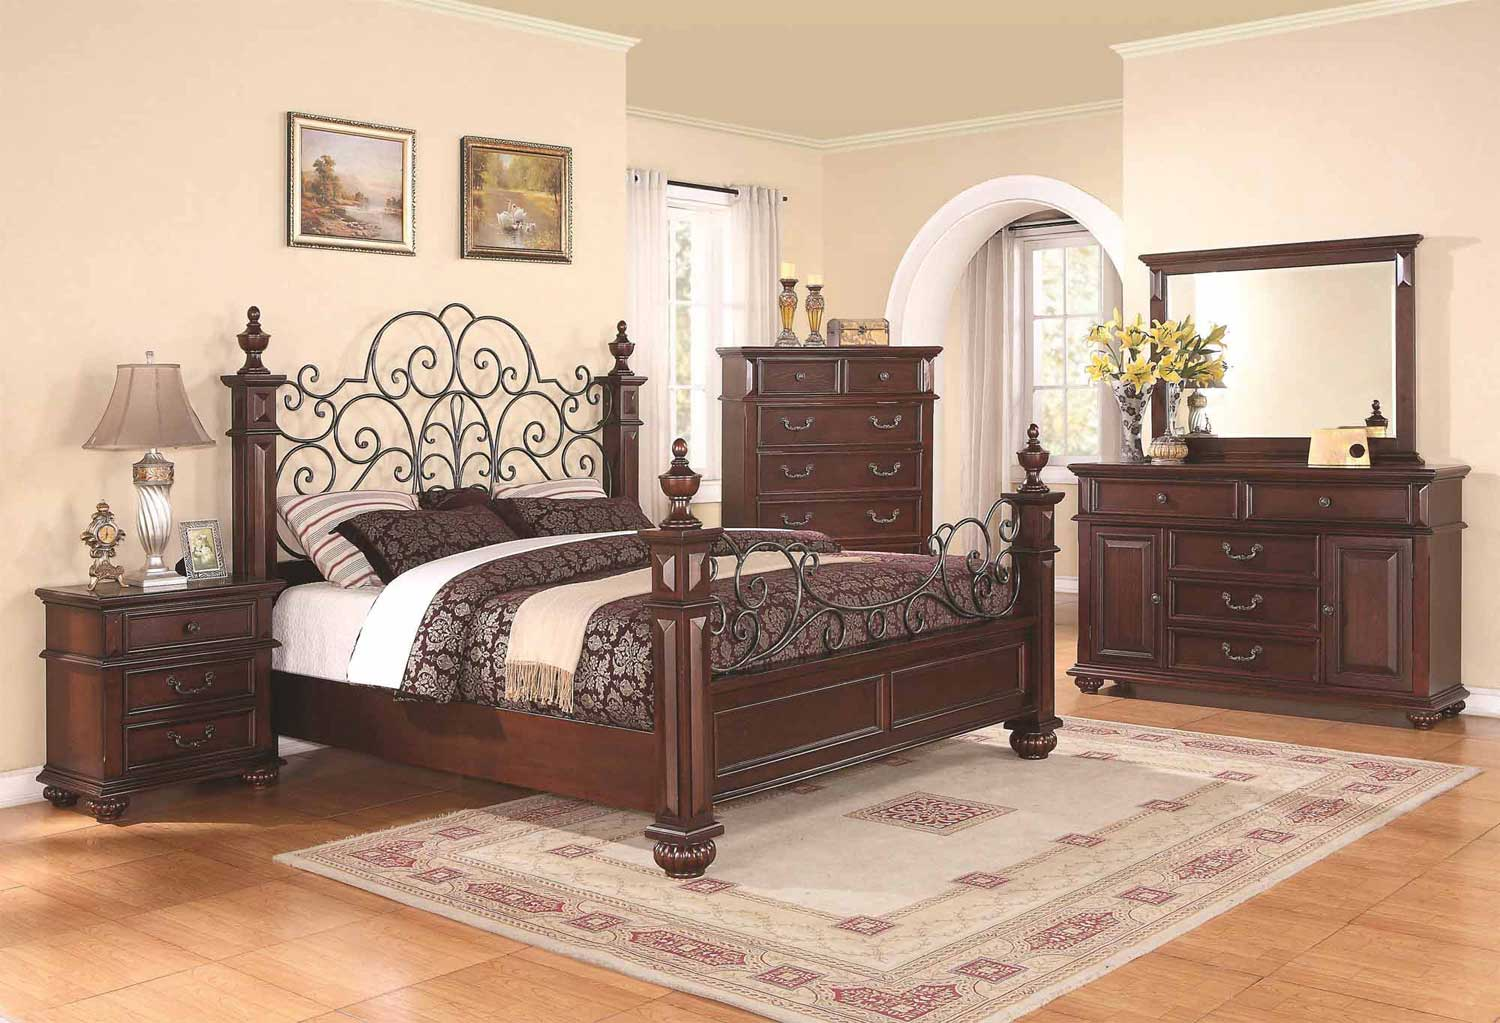 Coaster Kessner Bedroom Collection - Cherry